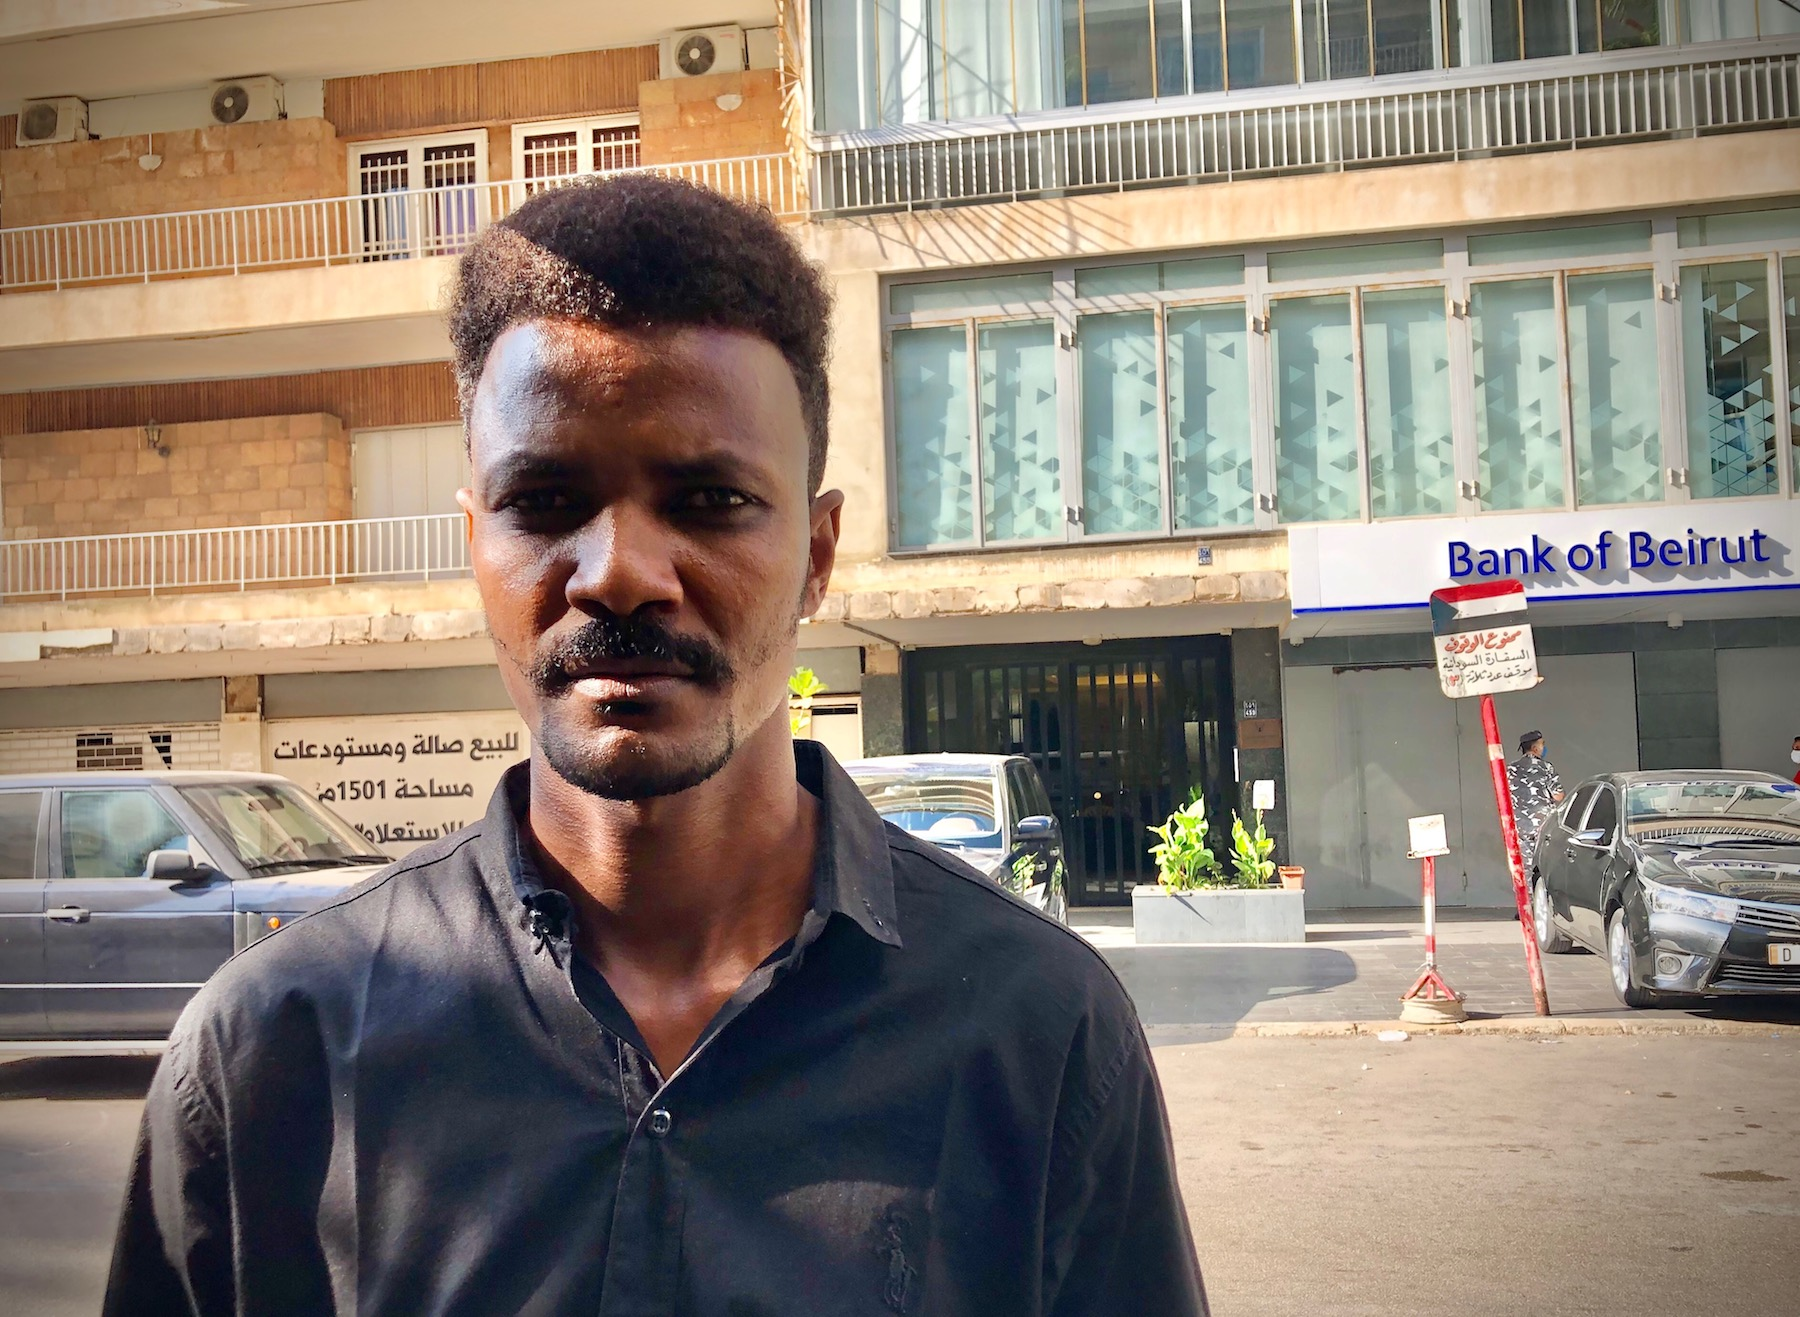 Sudanese migrant in Beirut